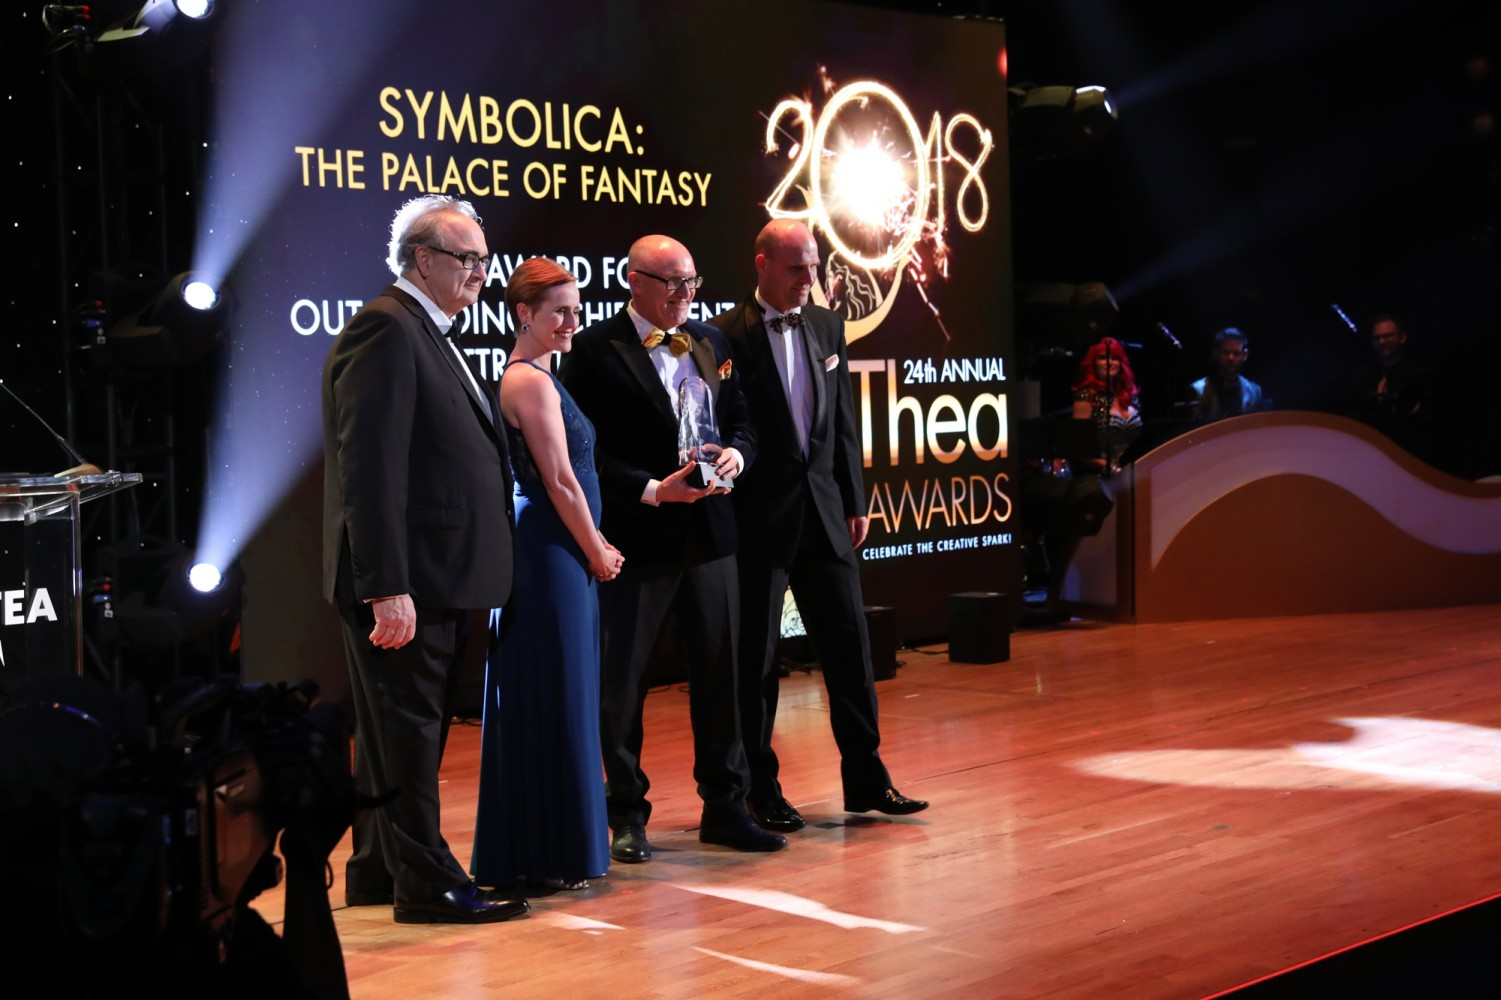 THEA Awards 2018 Symbolica